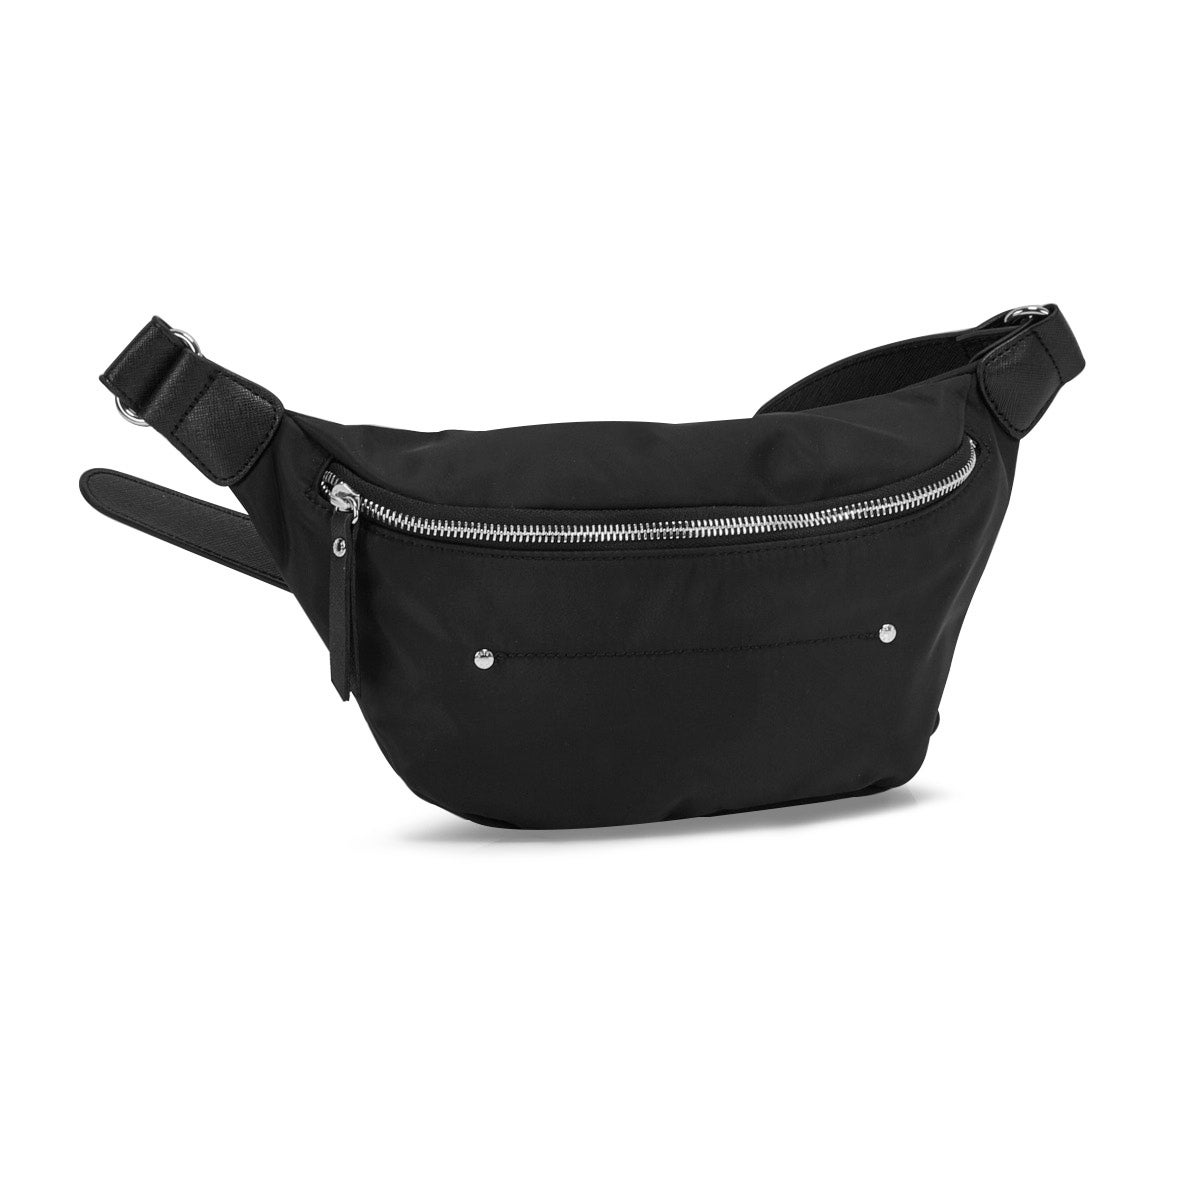 Lds Roots73 black fanny pack